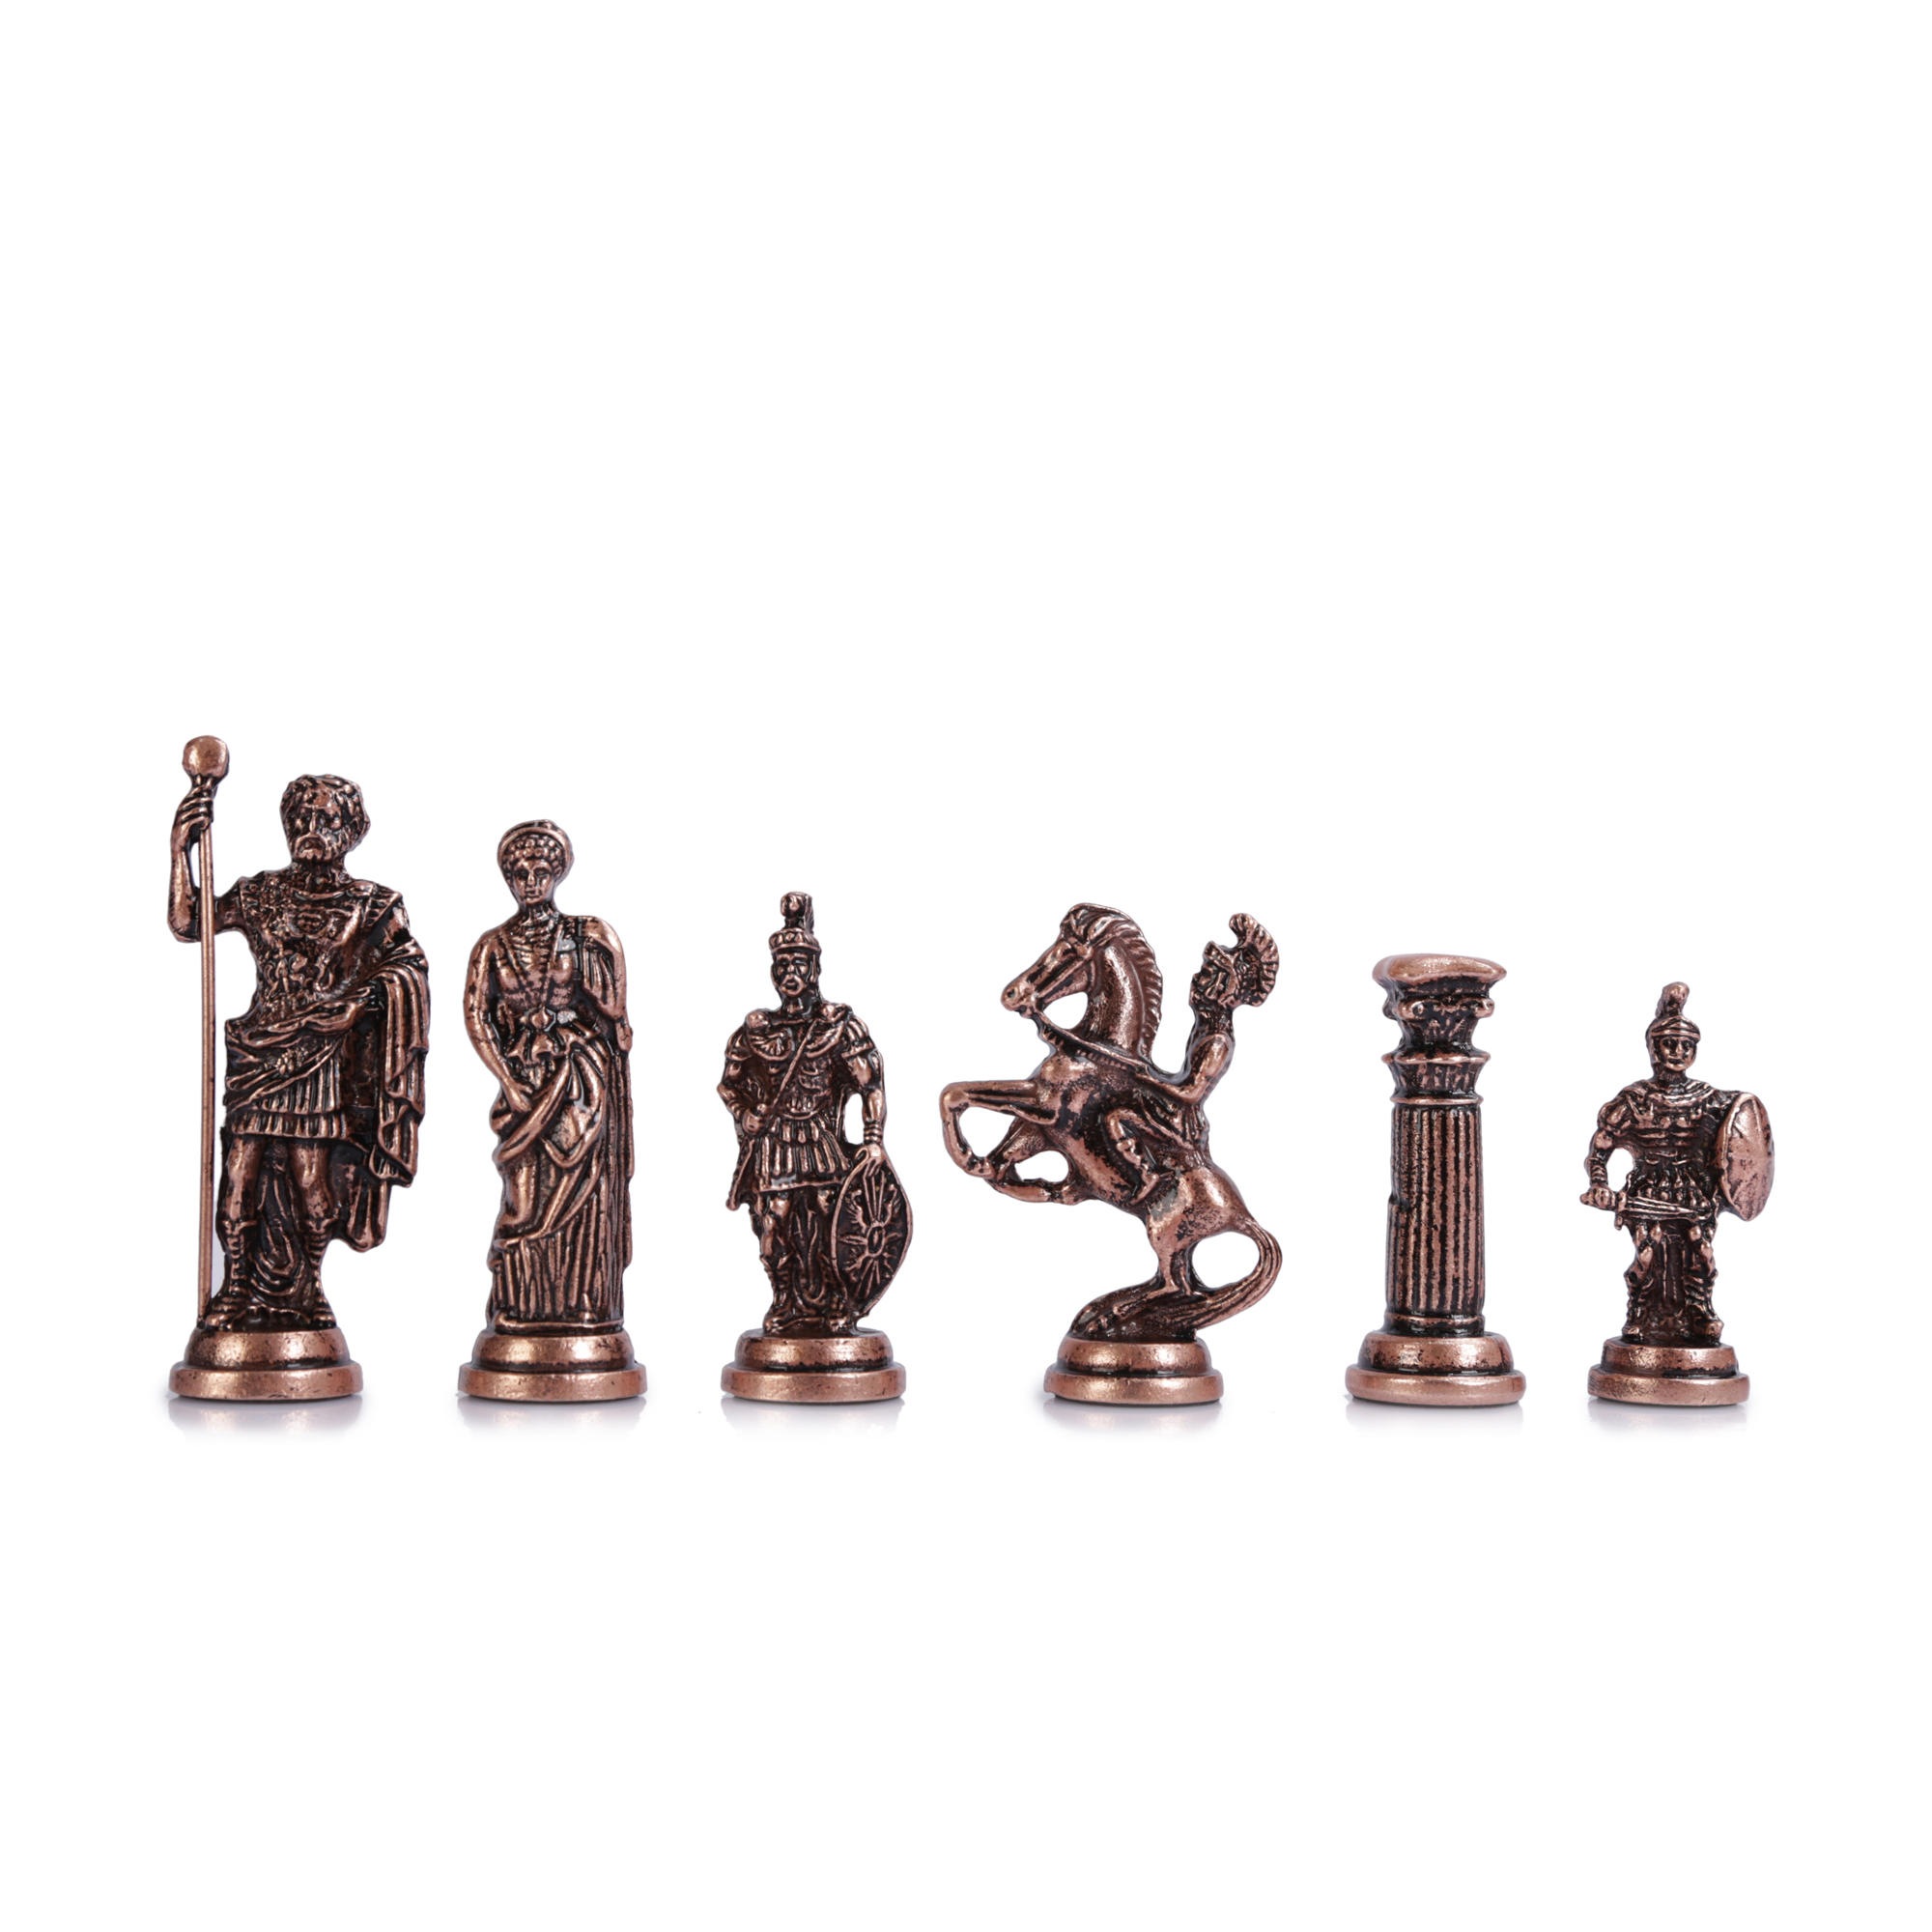 (Only Chess Pieces) Historical Antique Copper Rome Figures Handmade Metal Chess Pieces Big Size 11 Cm (Board Is Not Included)